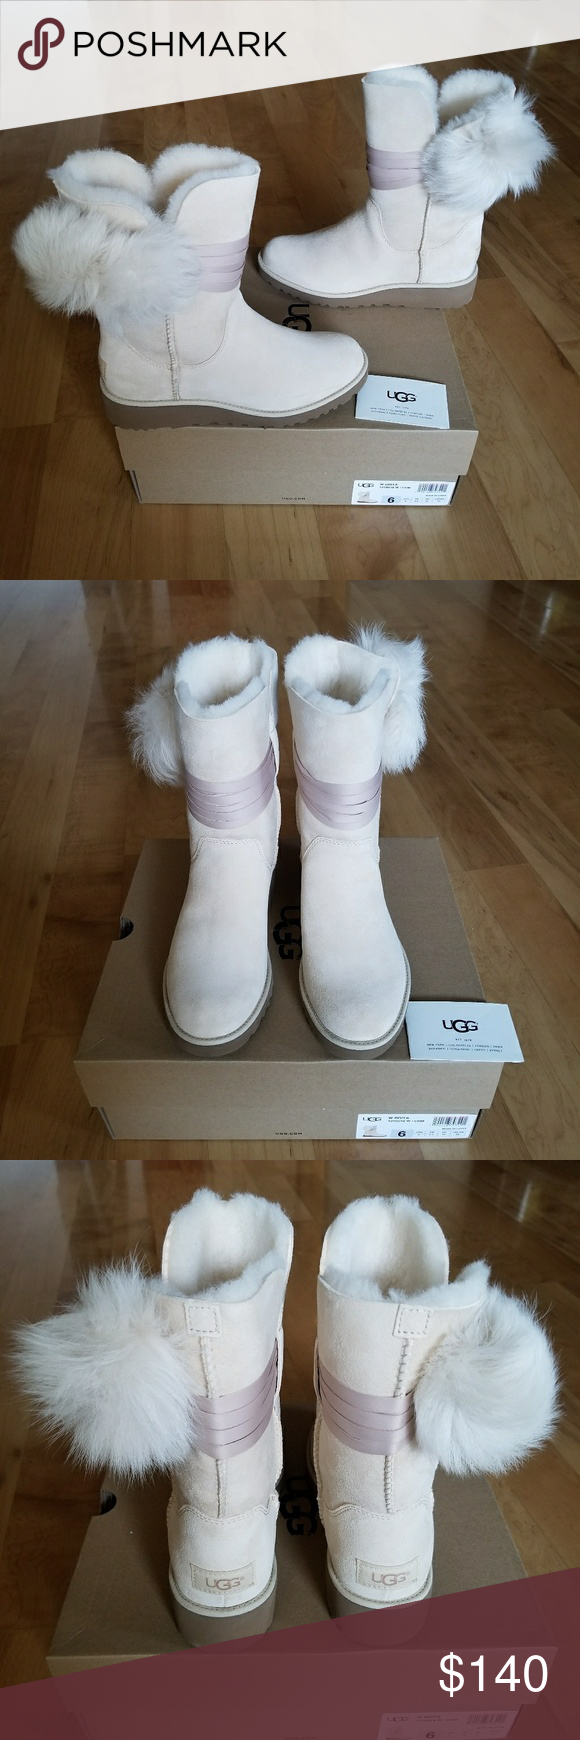 1330bffd8e0 UGG Boots NEW UGG Brita Boot. Size 6 in women. Cream color. Suede ...